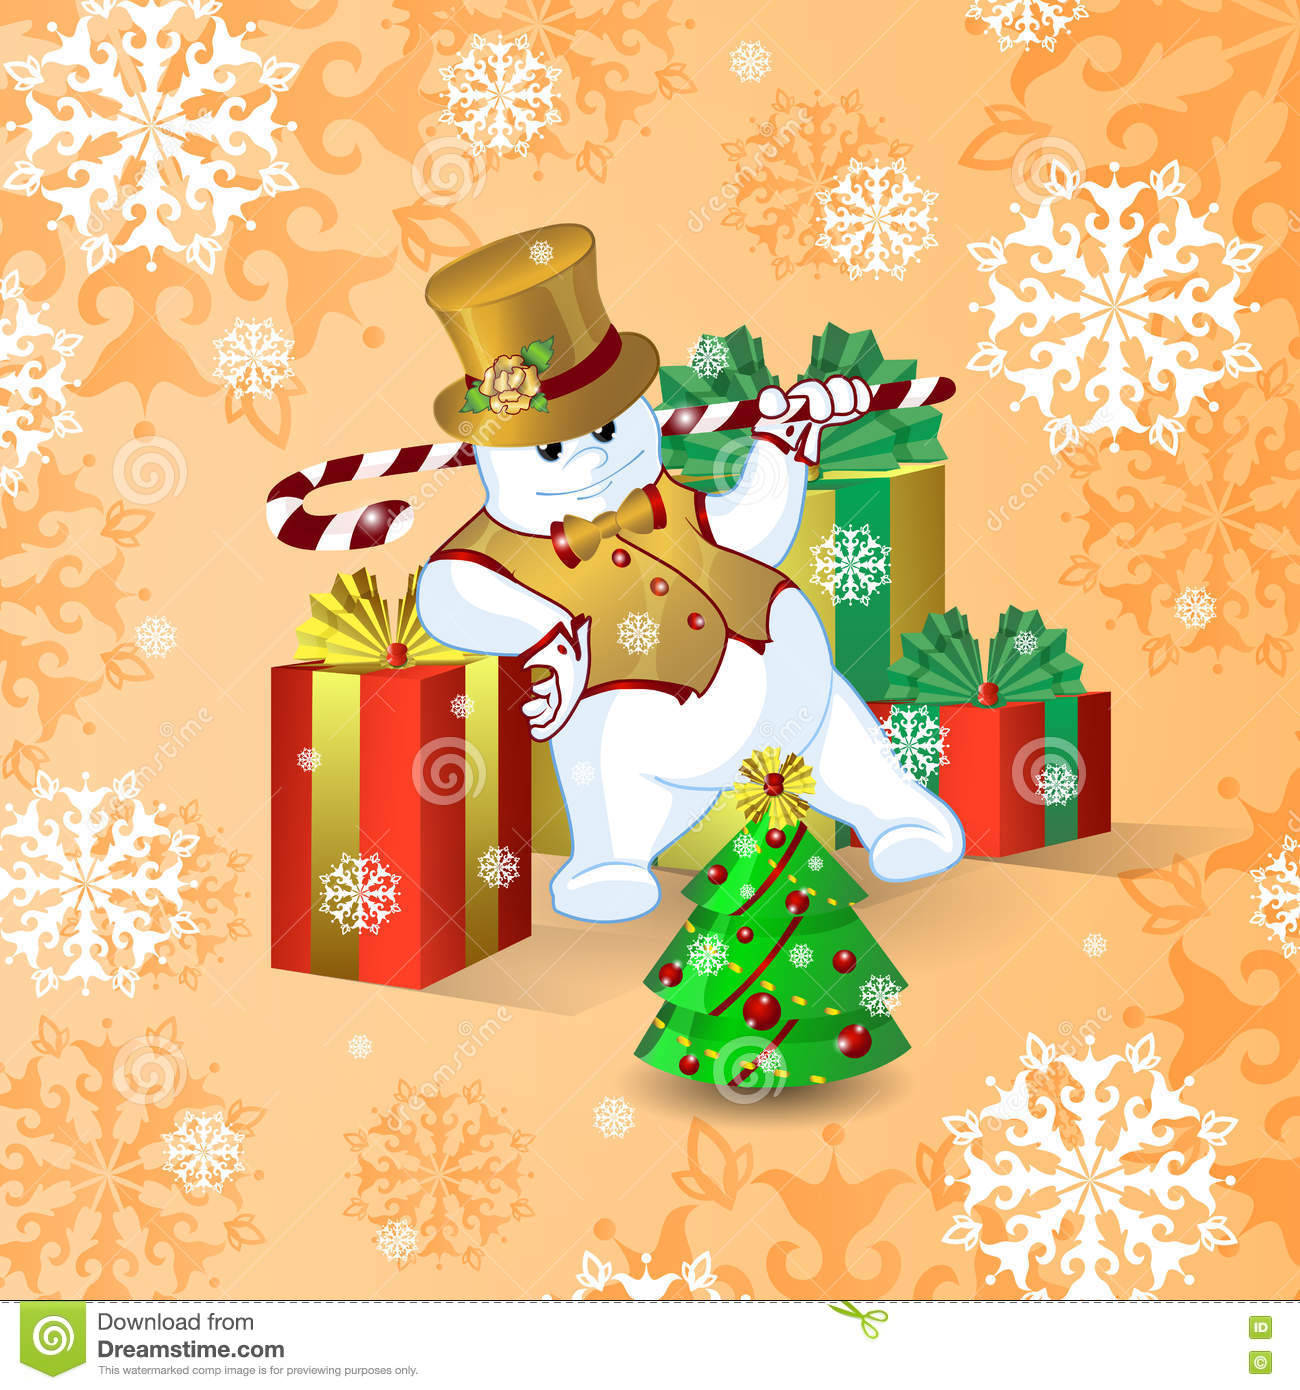 download vector card for christmas or new year dancing snowman in a gold top hat